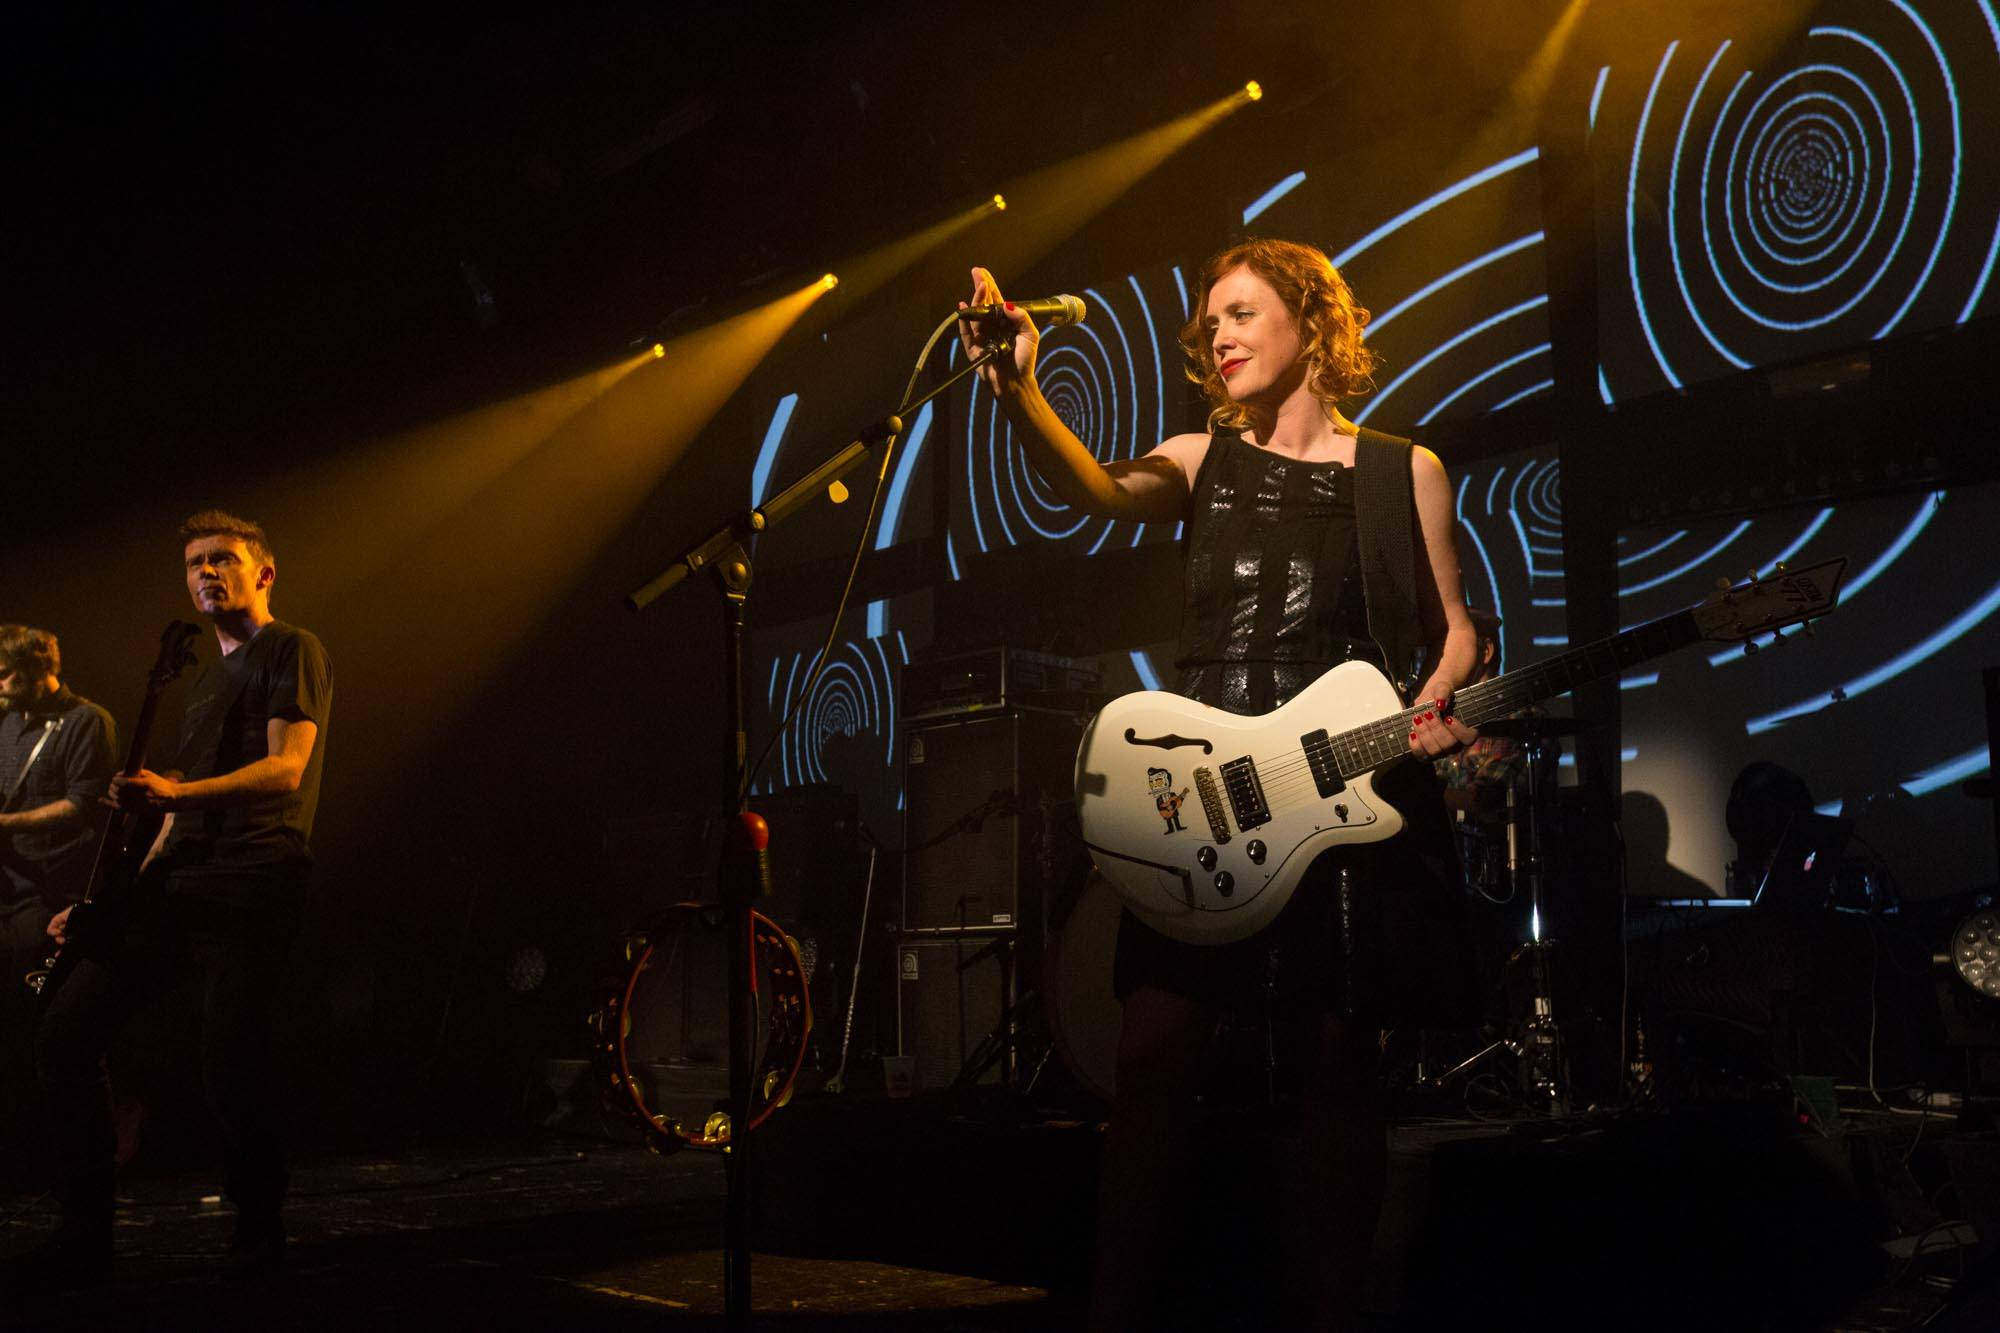 Slowdive at the Commodore Ballroom, Vancouver, Nov 3 2014. Kirk Chantraine photo.